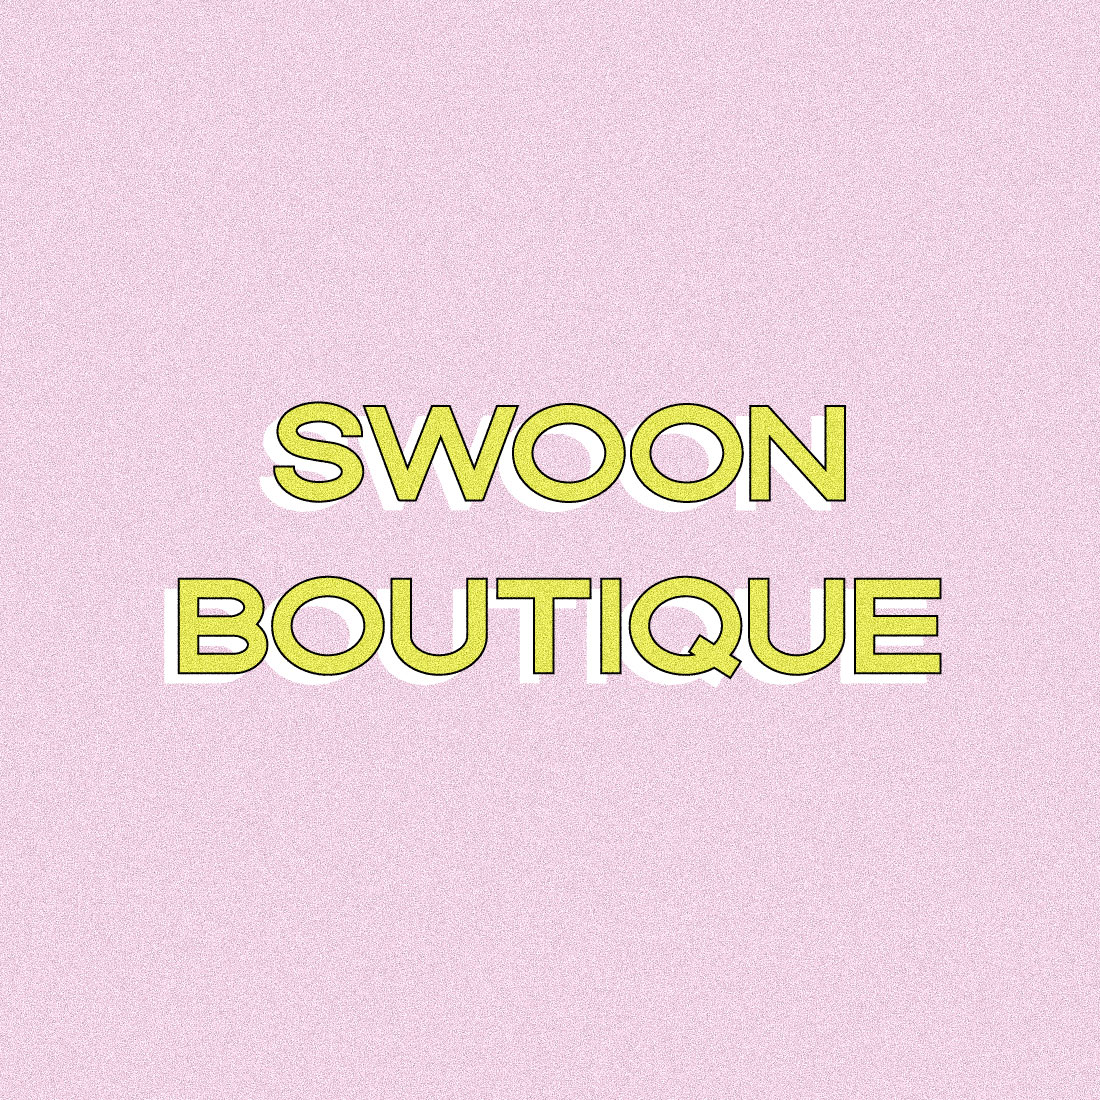 Swoon boutique branding